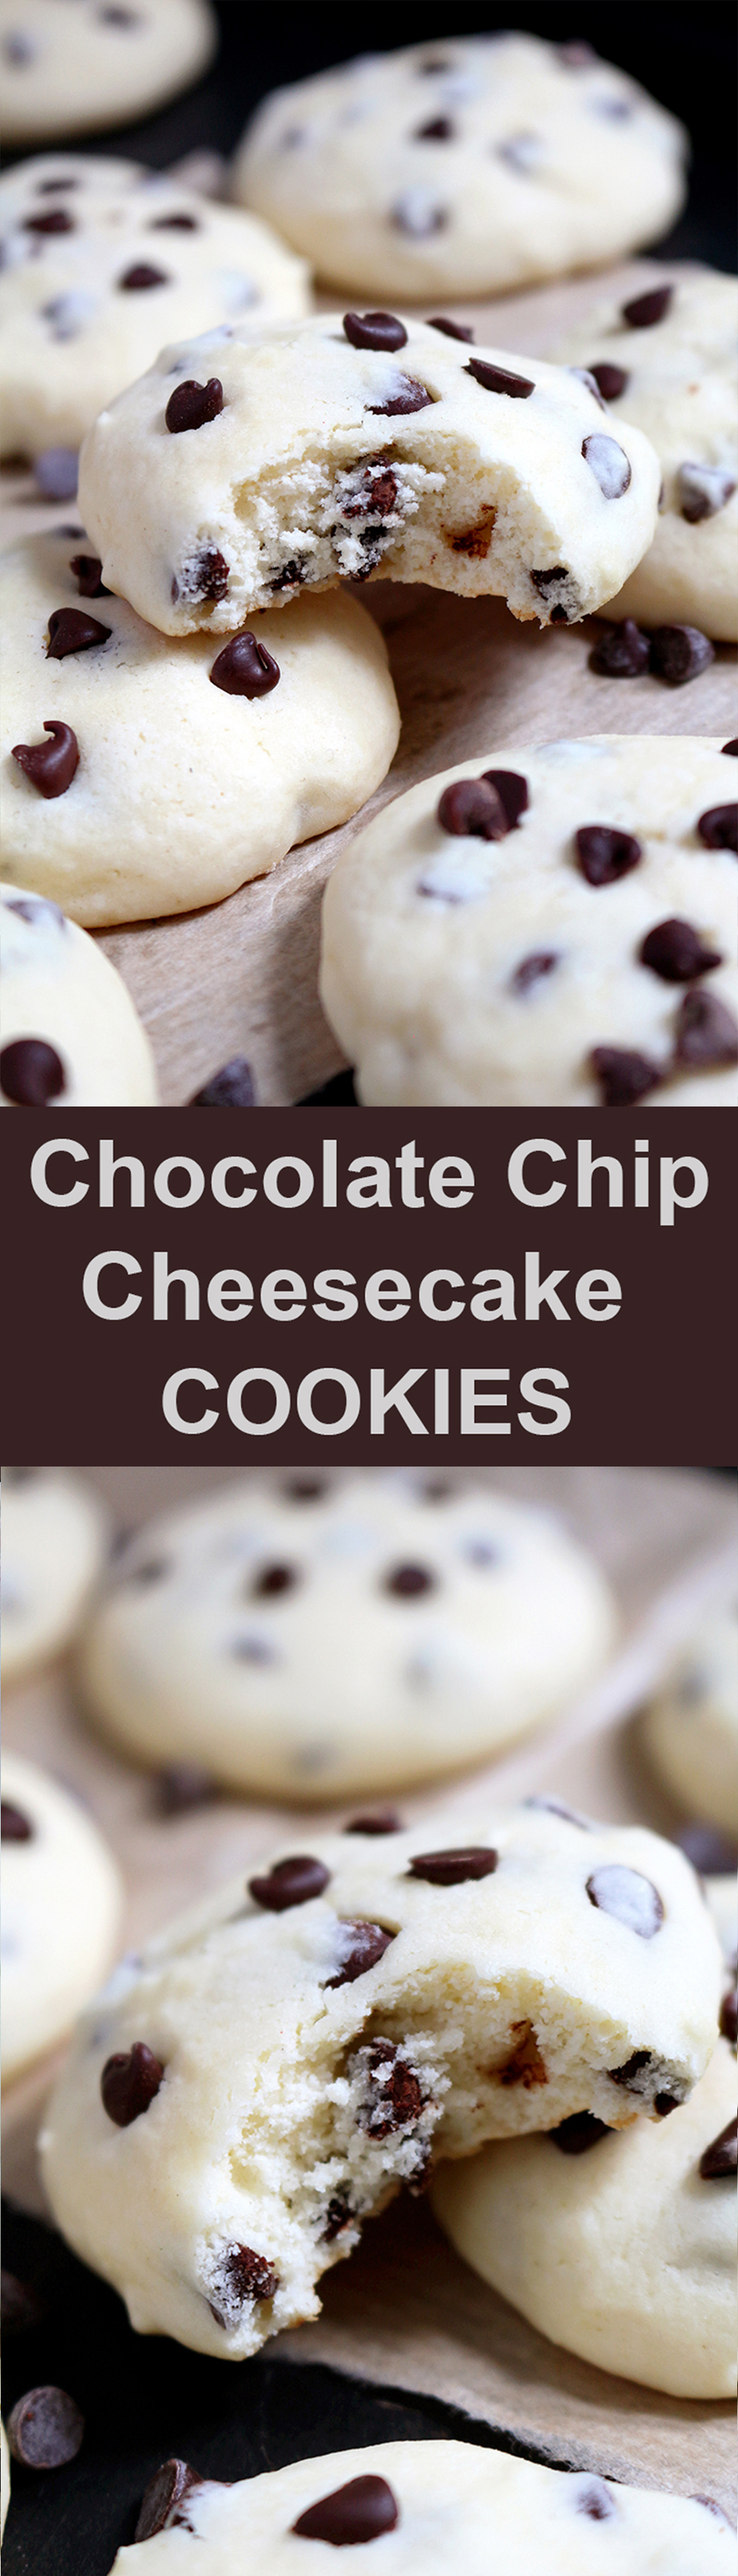 Chocolate Chip Cheesecake Cookies